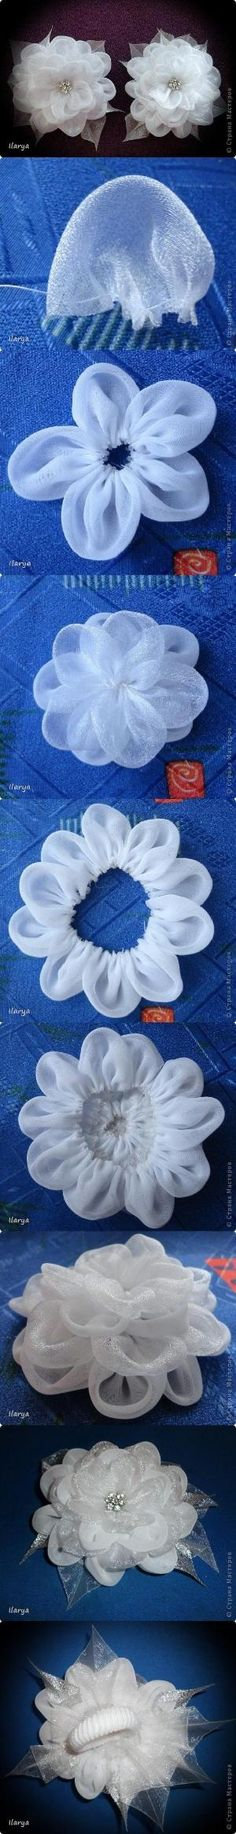 DIY Fabric Lust Flower by MarylinJ